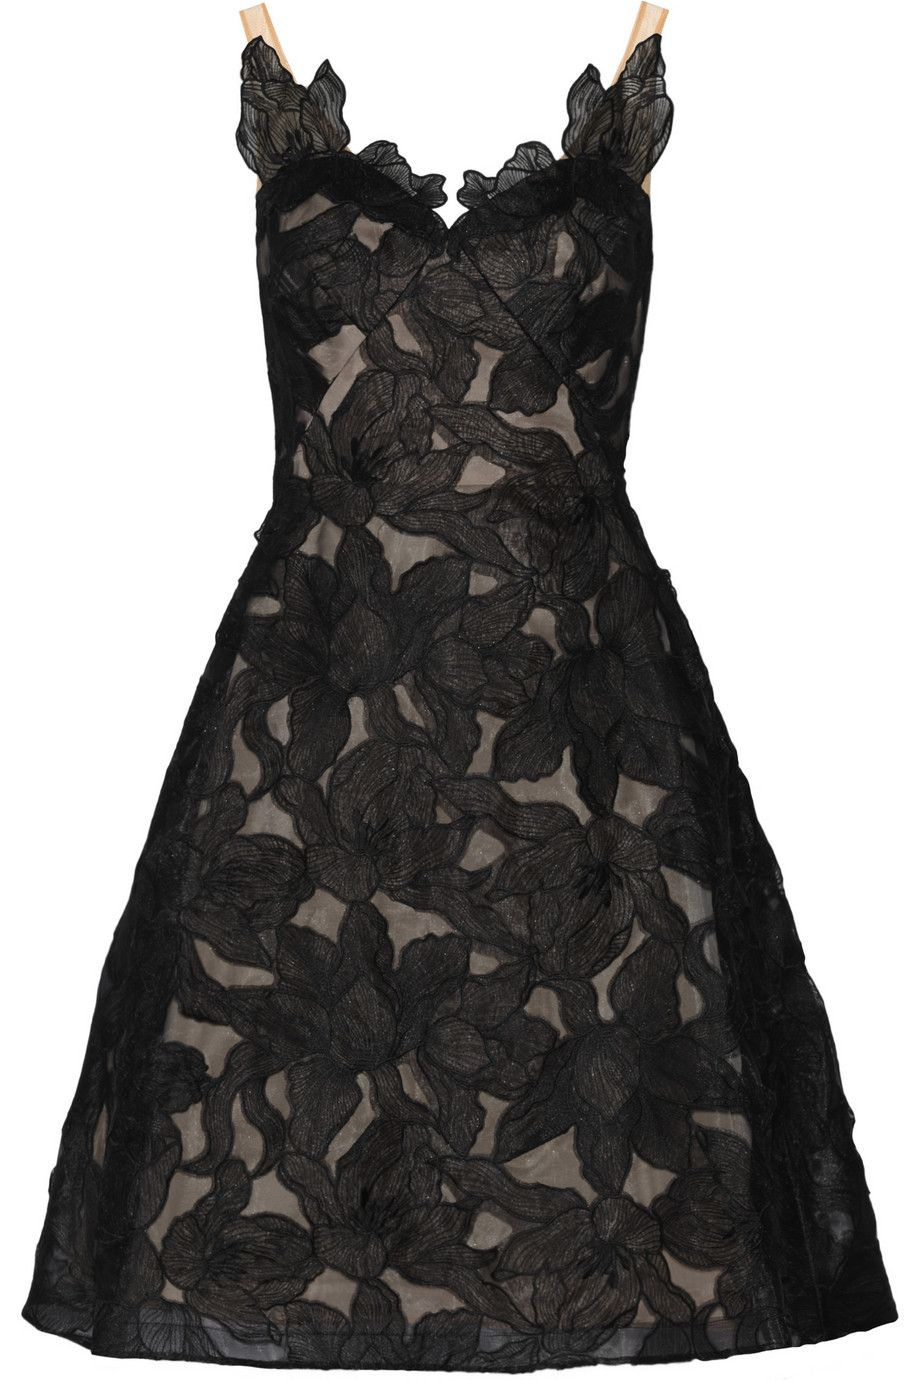 organza floral dress - Black Marchesa Cheap Real Authentic 4H7adM76